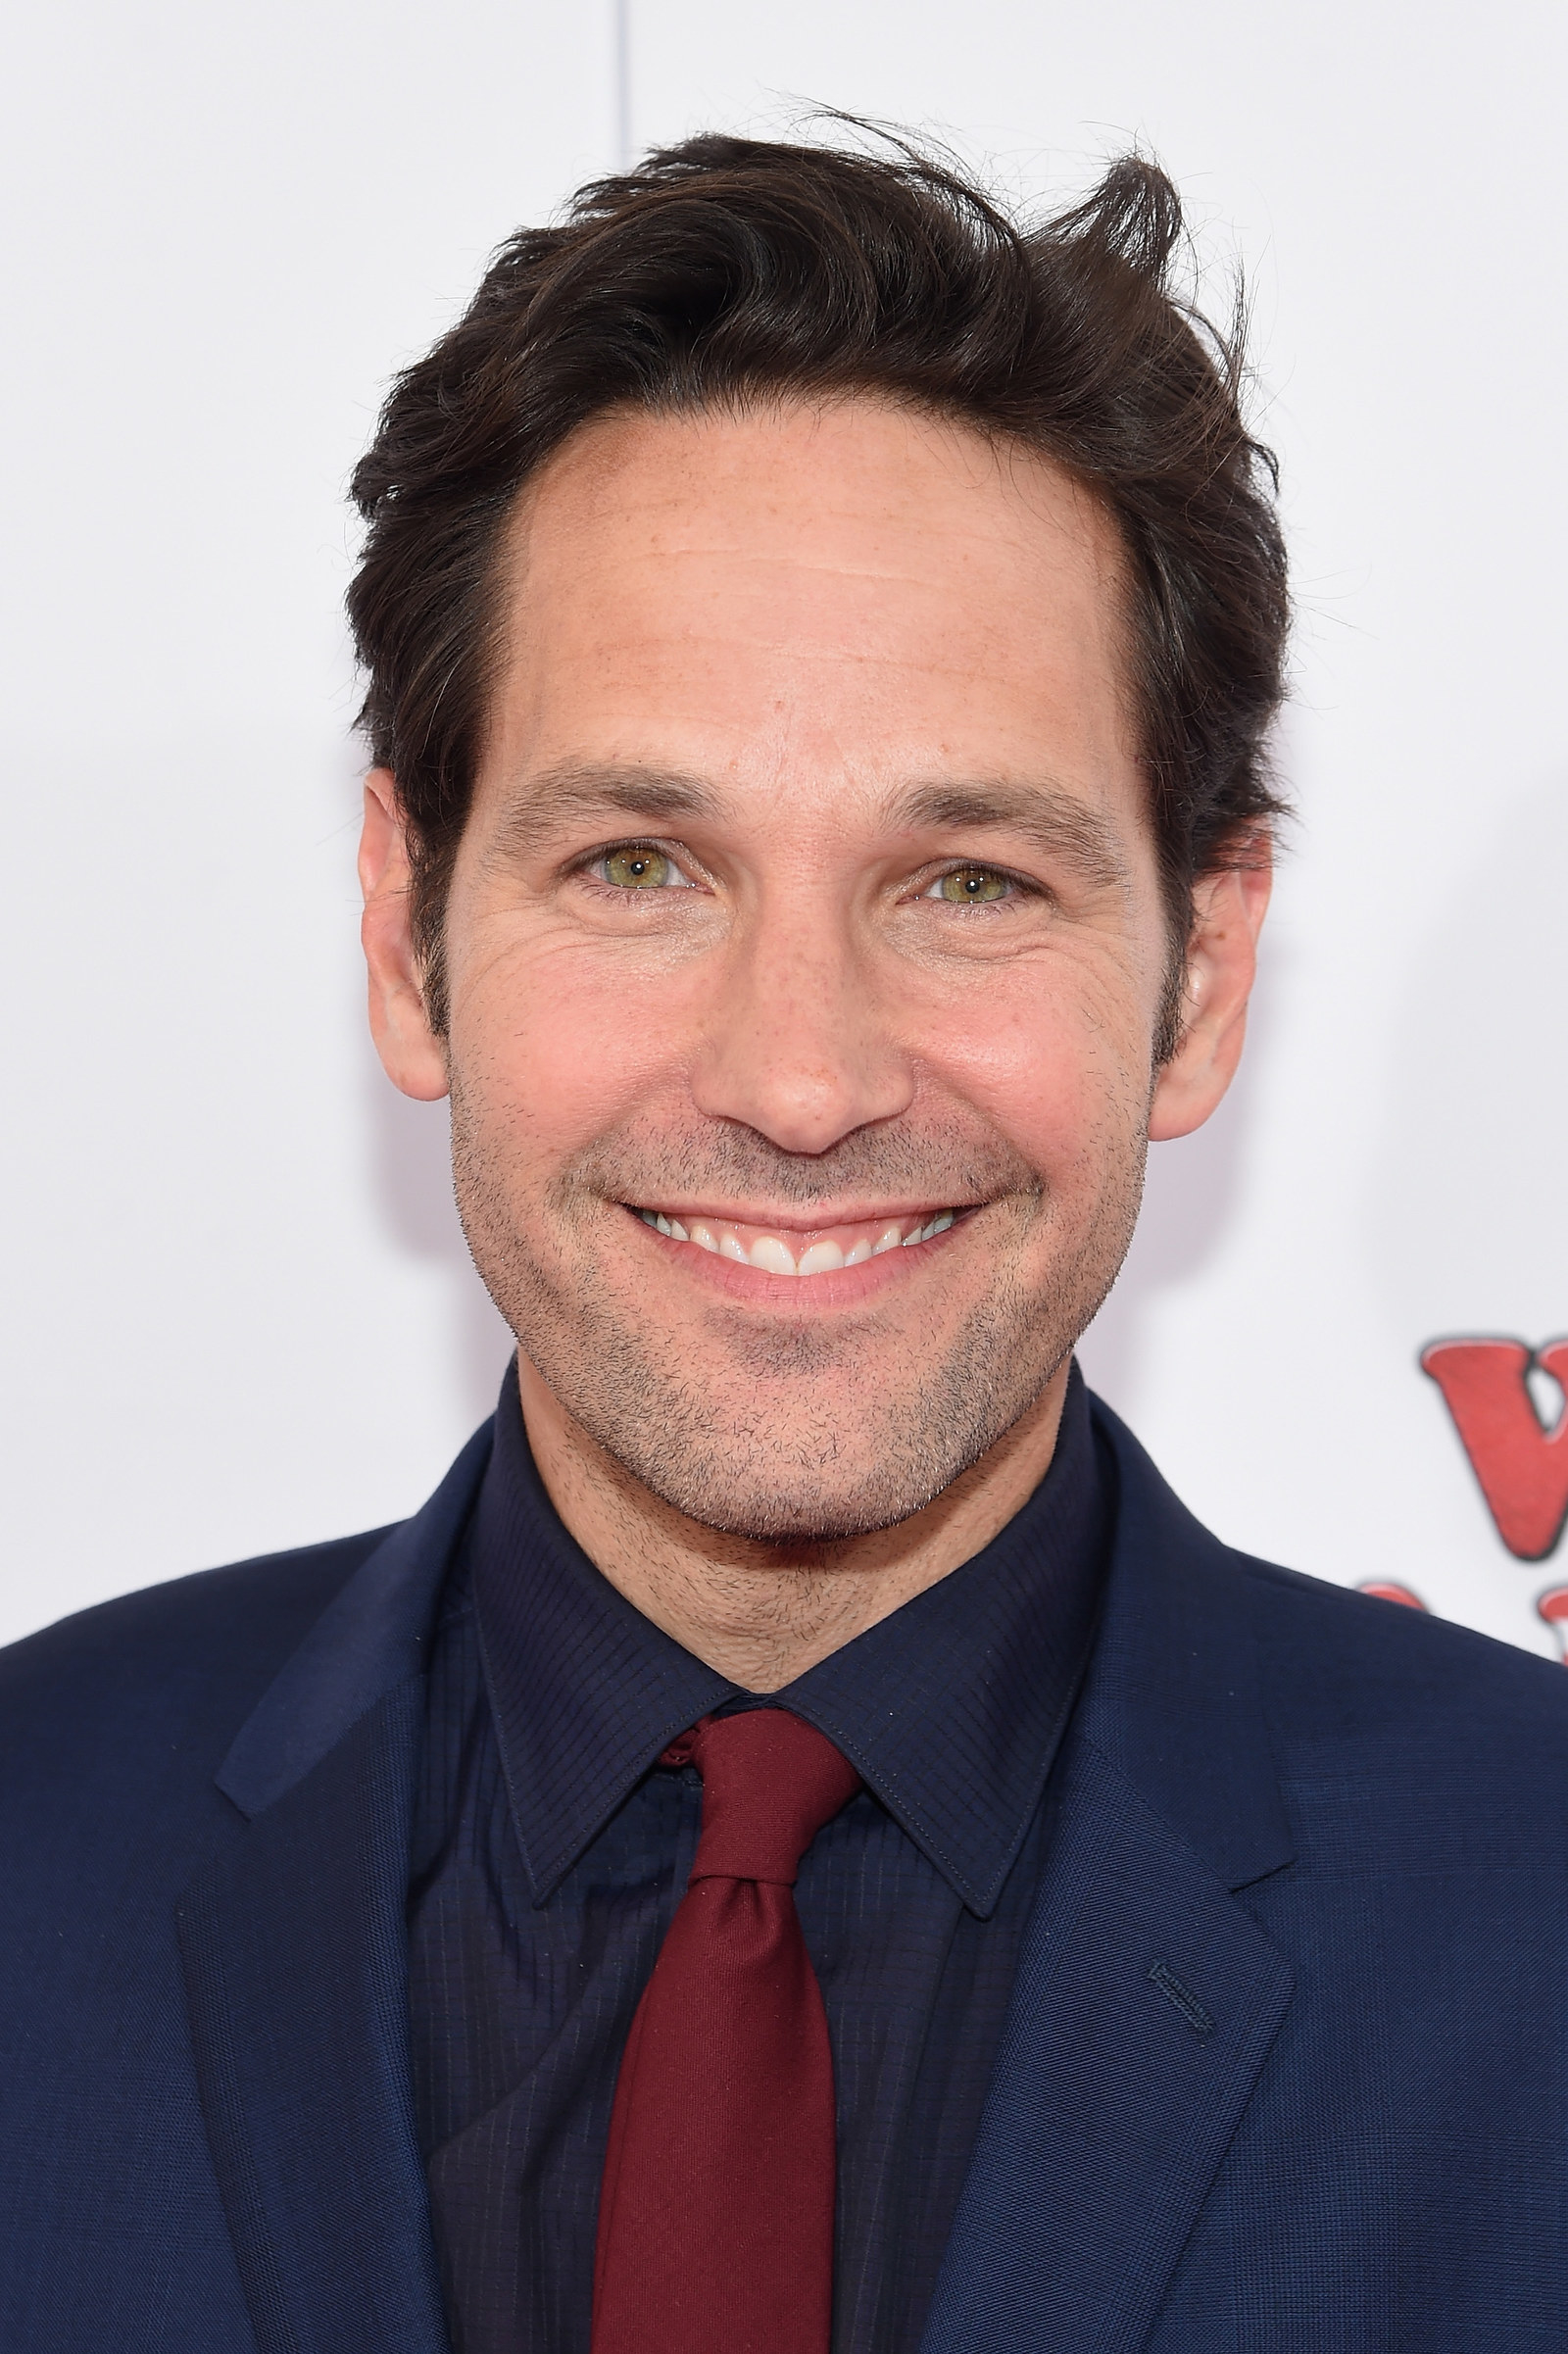 I Was Not Prepared For 2016 To Be Paul Rudd's Hottest Year To Date